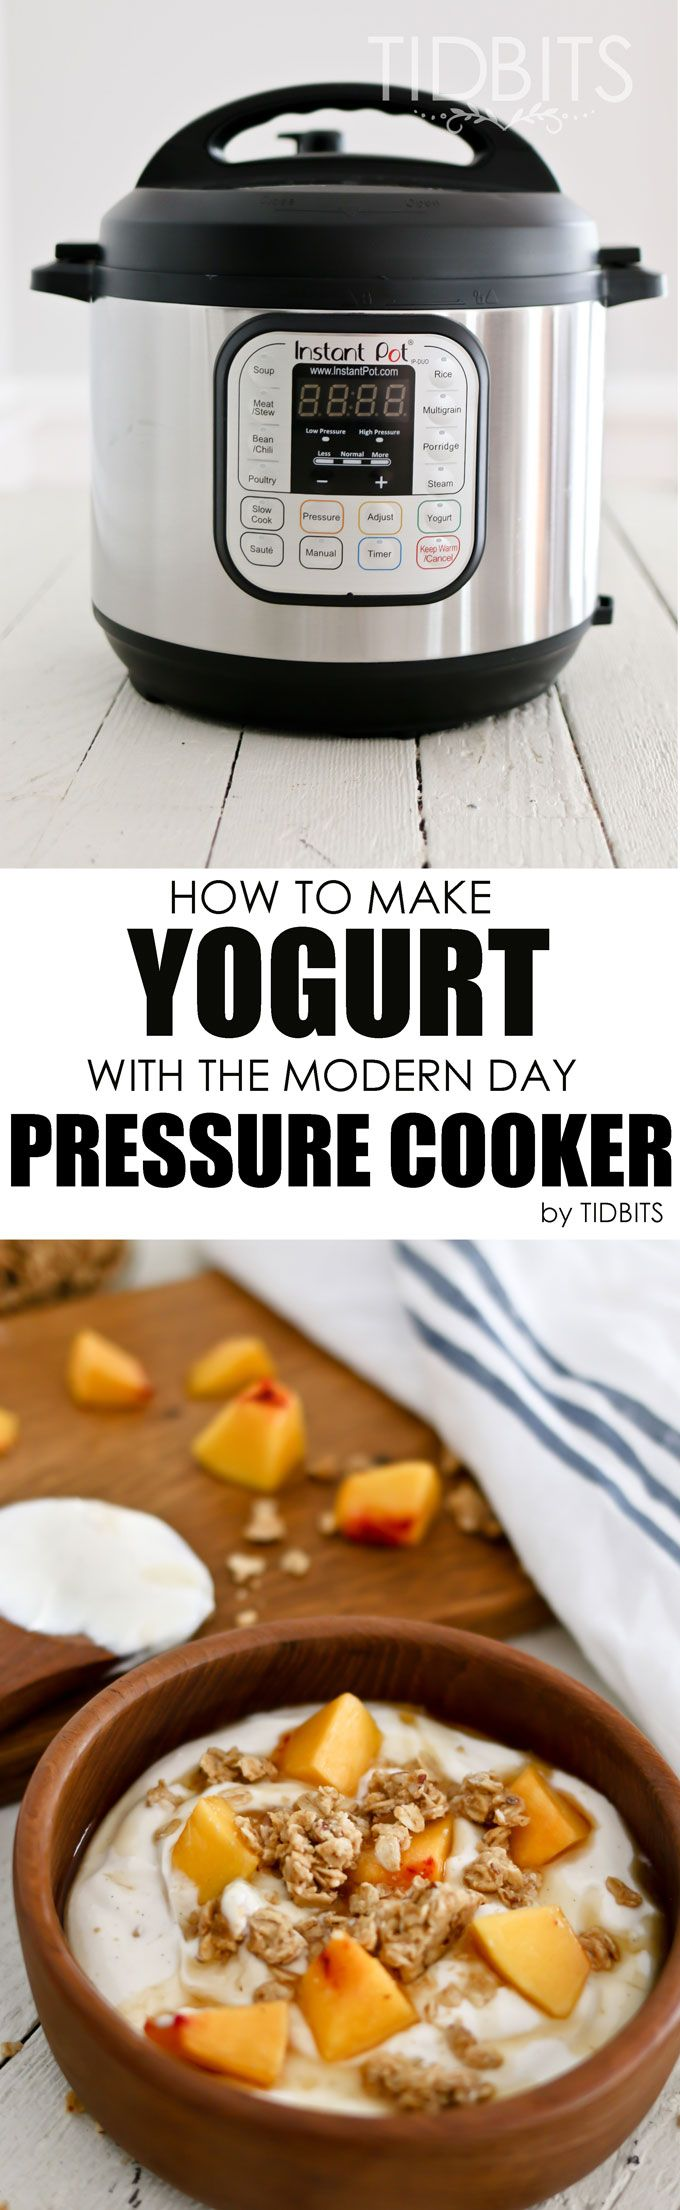 The easiest and yummiest way to make yogurt - with the modern day pressure cooker.